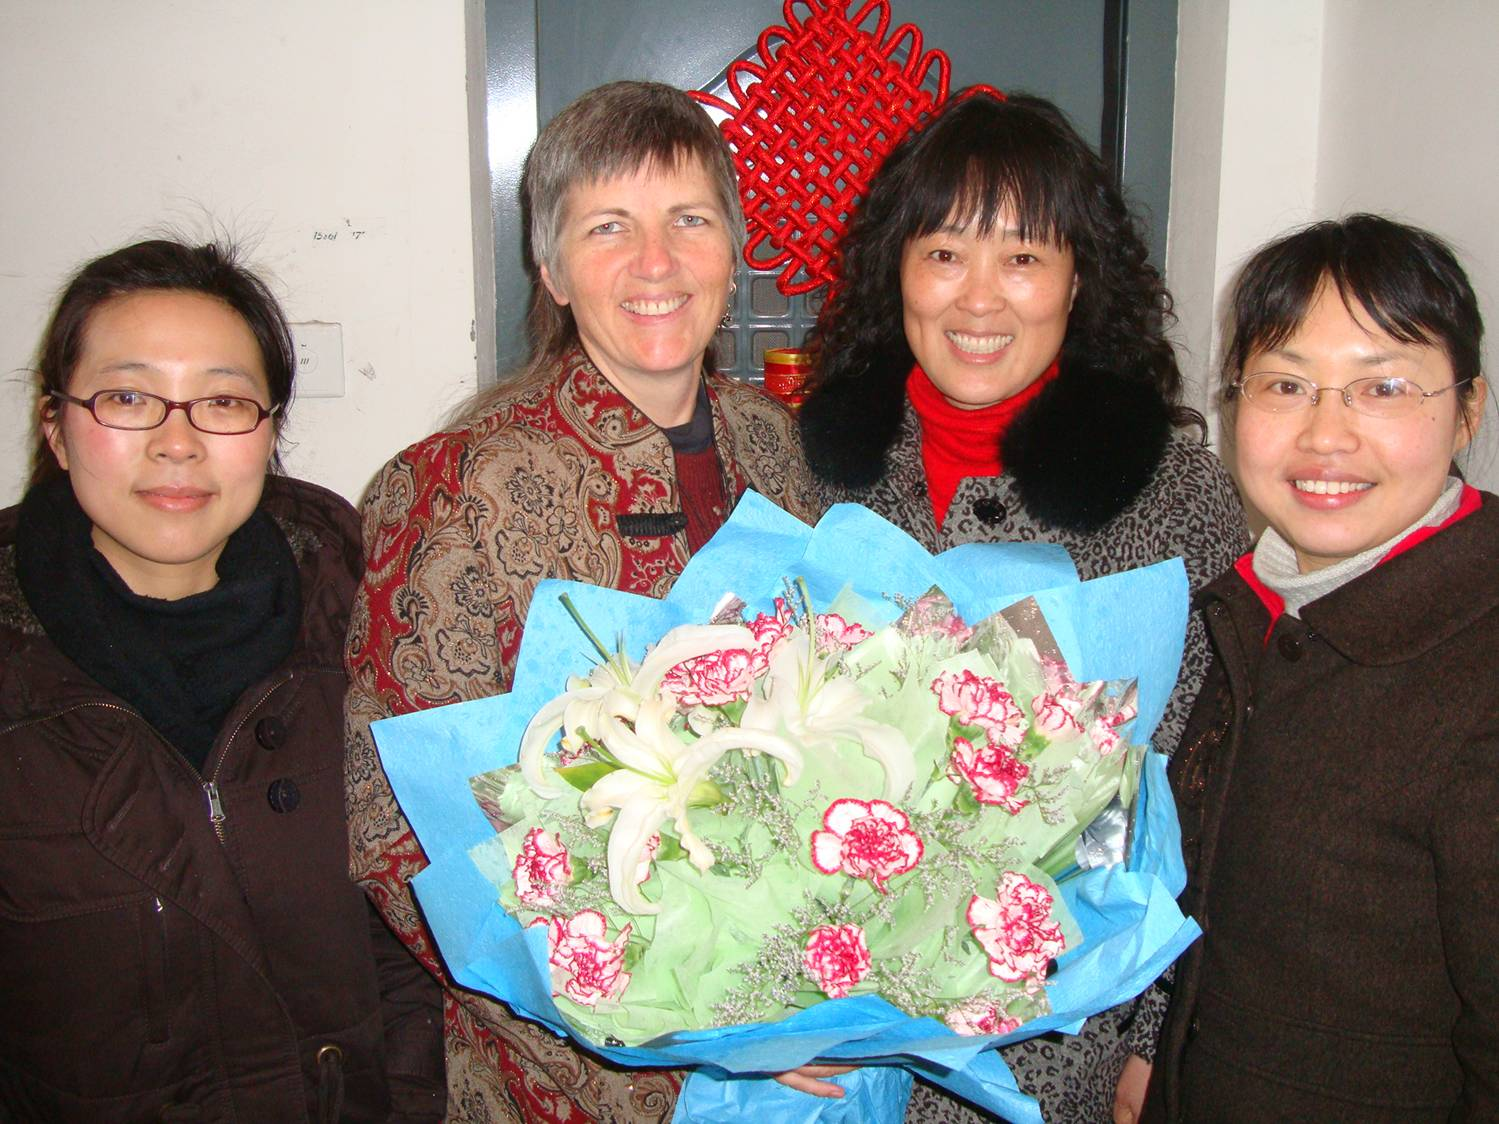 Ruth and the delegation from the administration, lead by Ms. Liu, with the beautiful bouquet for Women's Day.  Jiangnan University, Wuxi, China